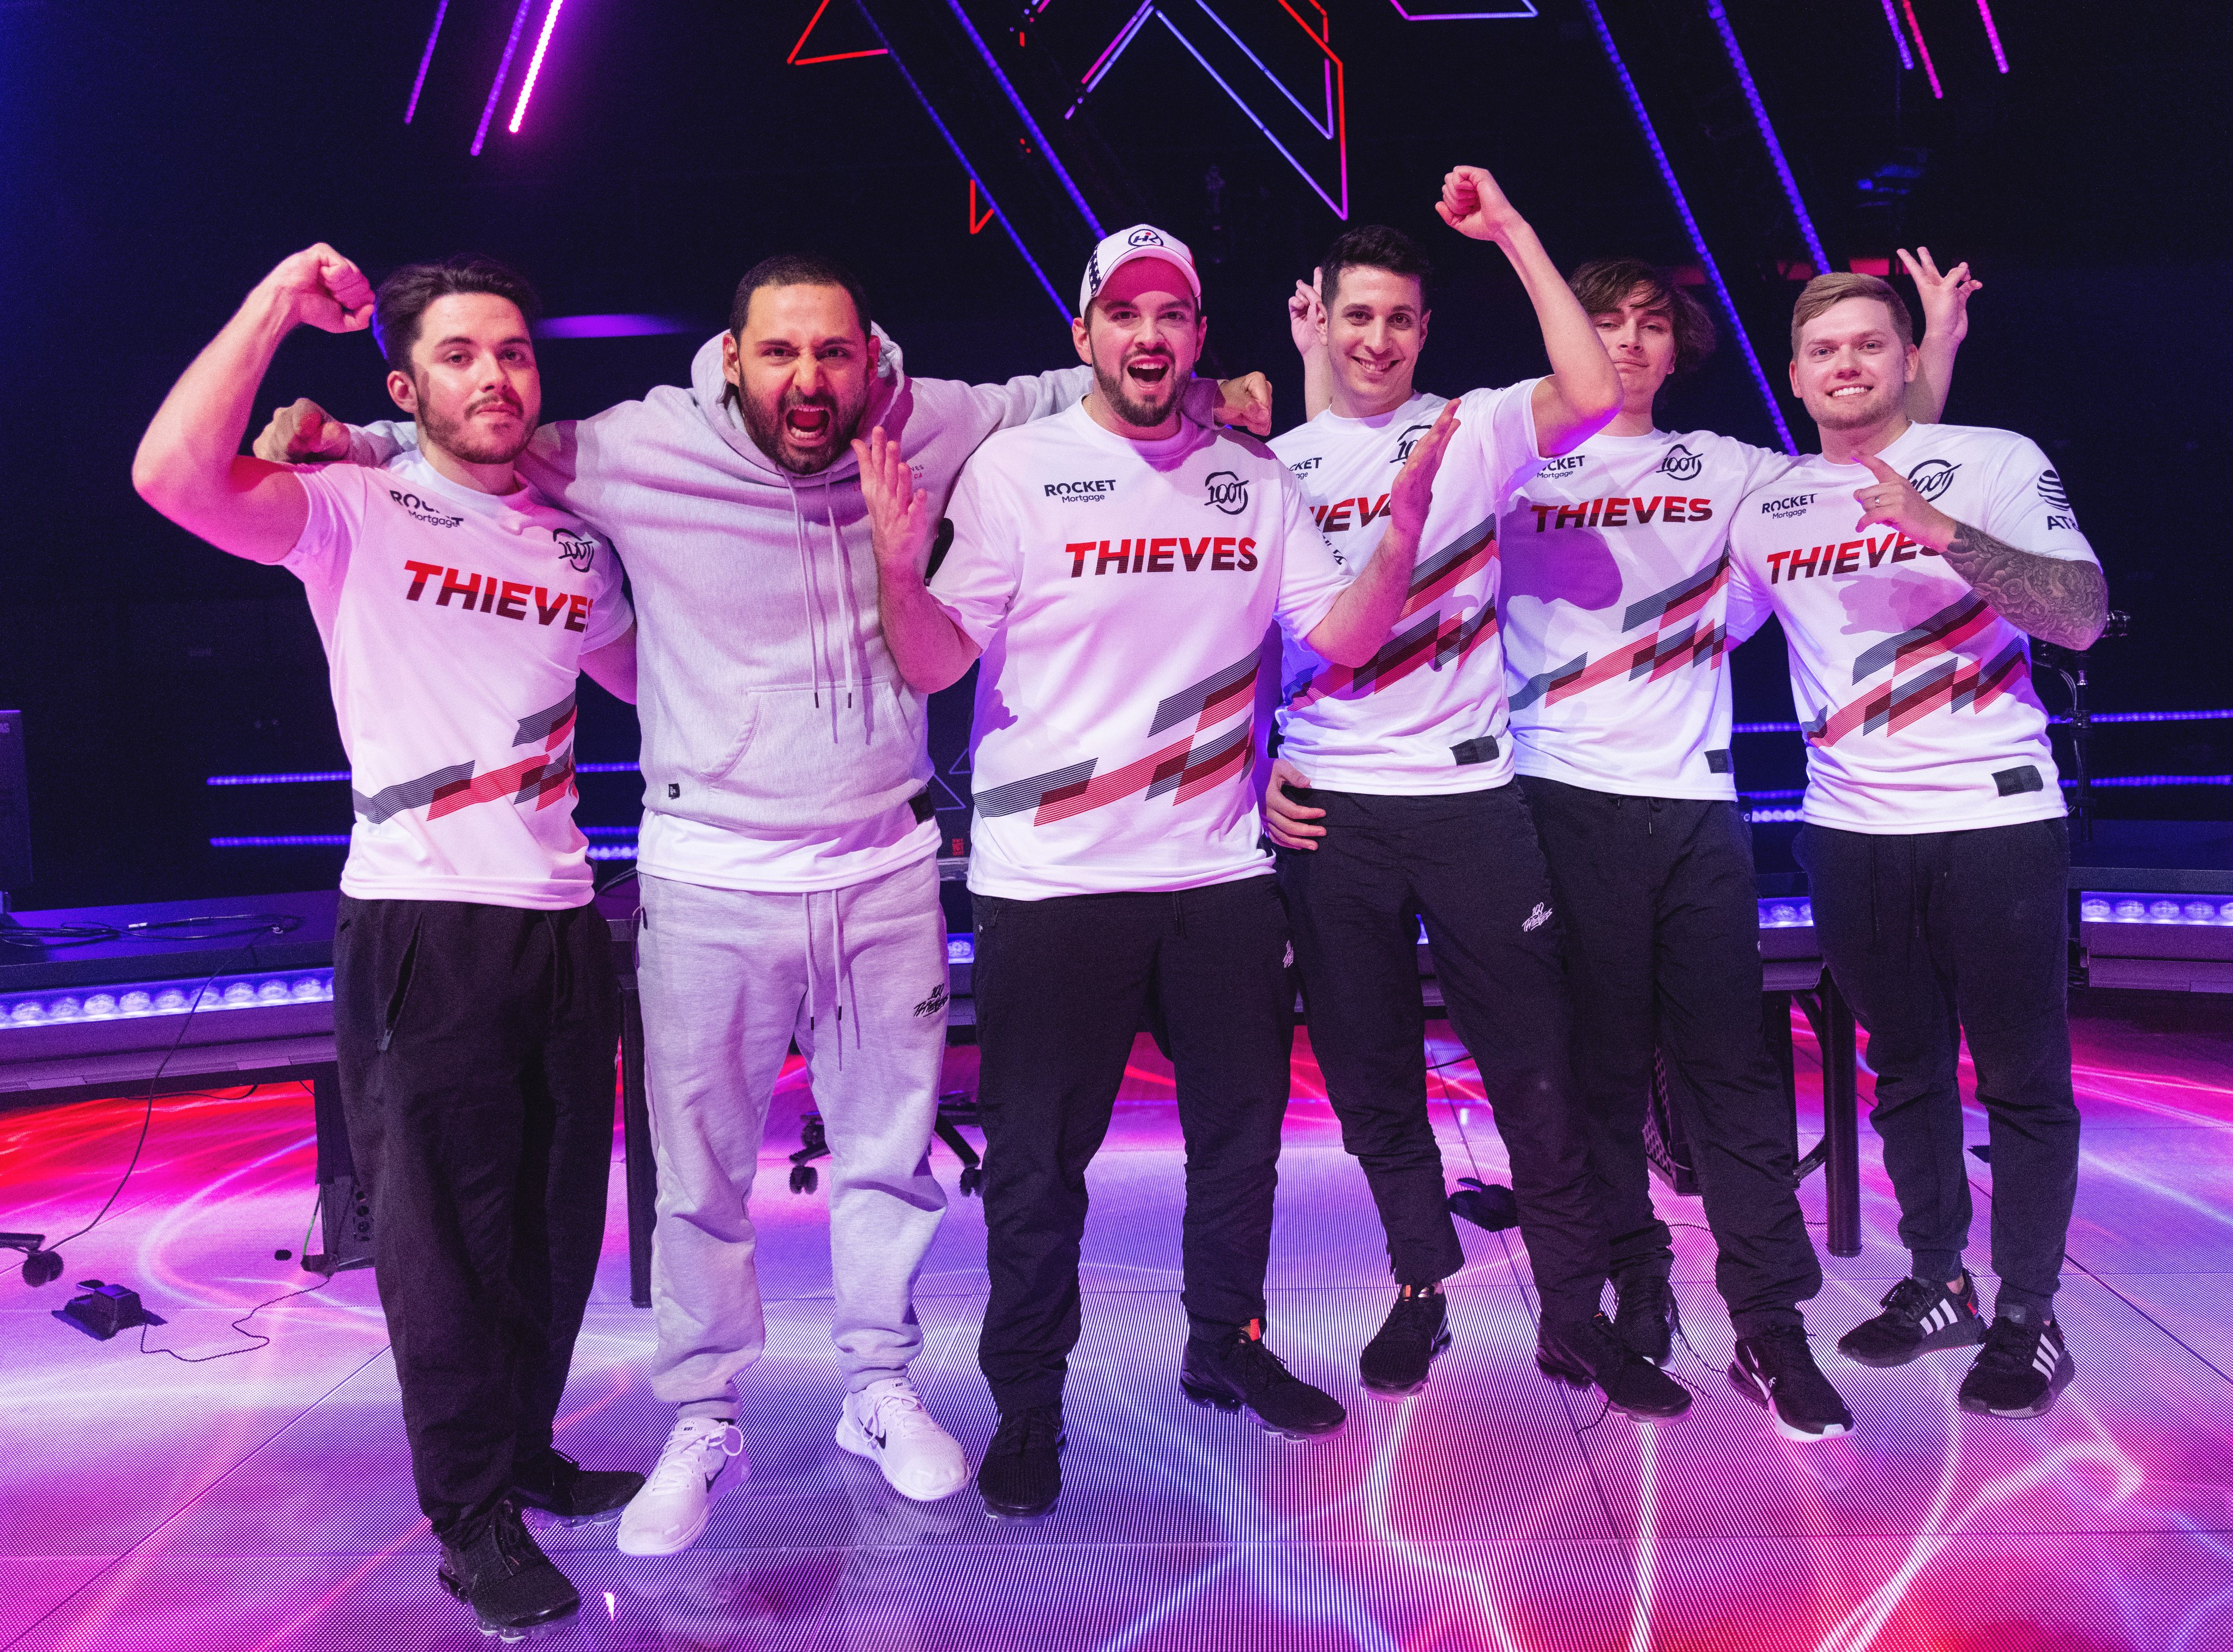 VCT Berlin - 100 Thieves